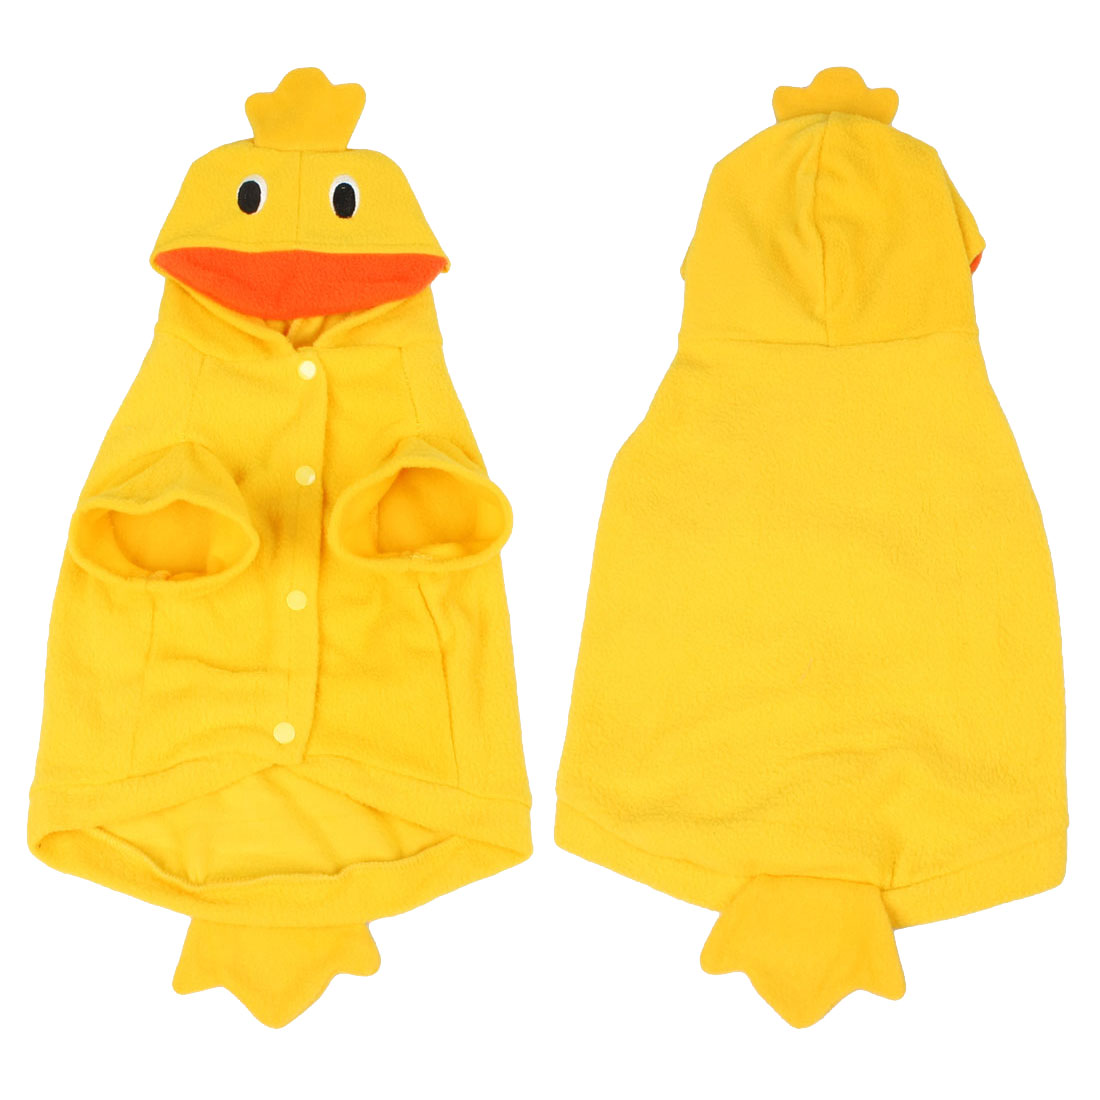 Costume Party Xmas Duck Design Dog Clothing Pet Apparel XL